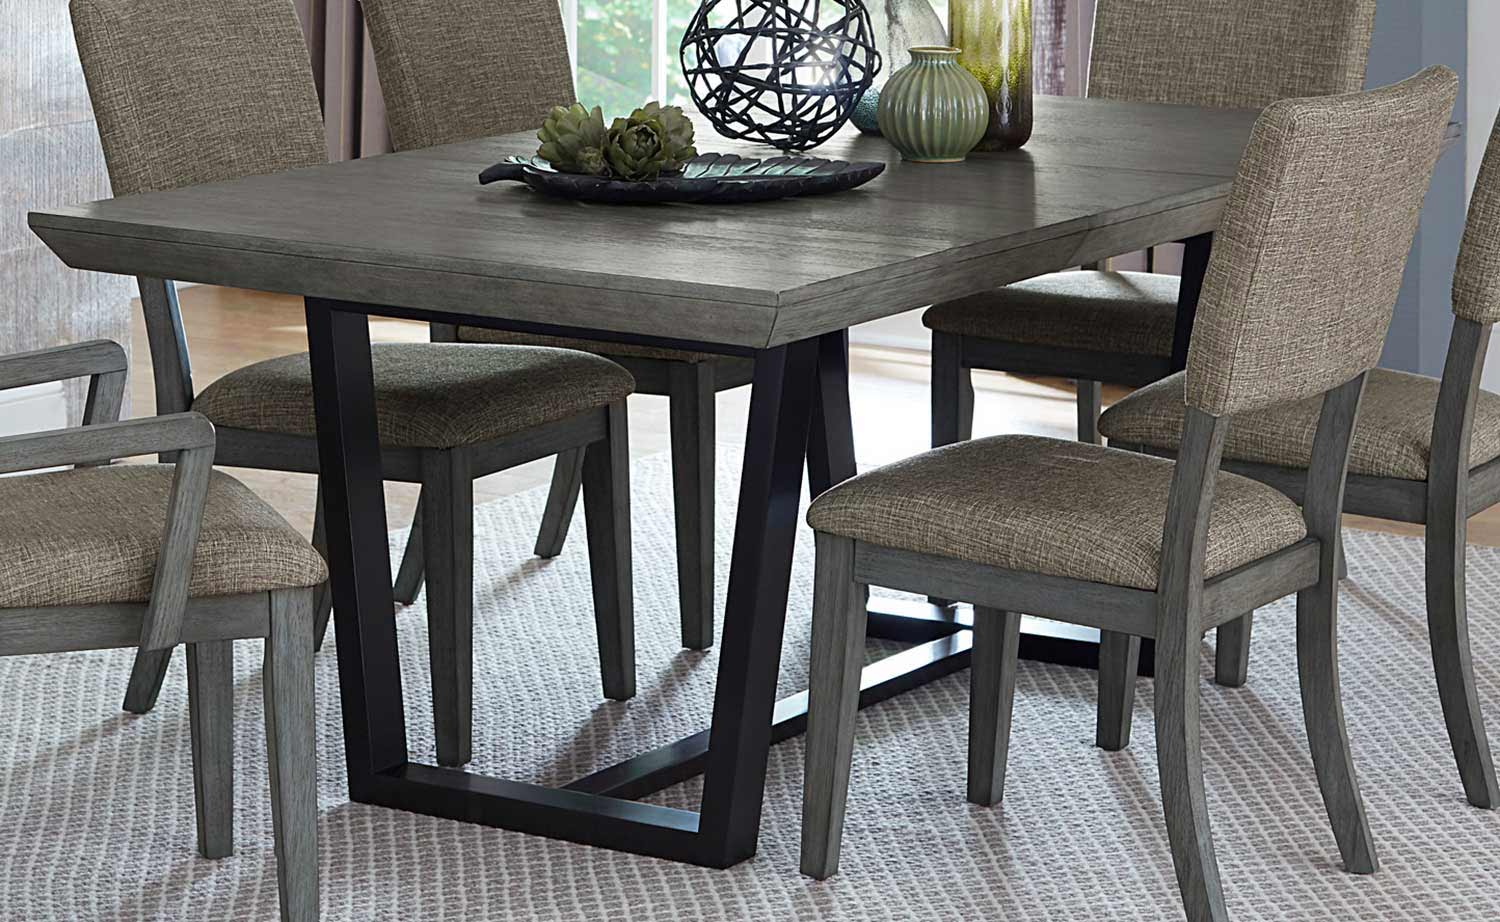 Homelegance Avenhorn Dining Table - Gray - Black Metal